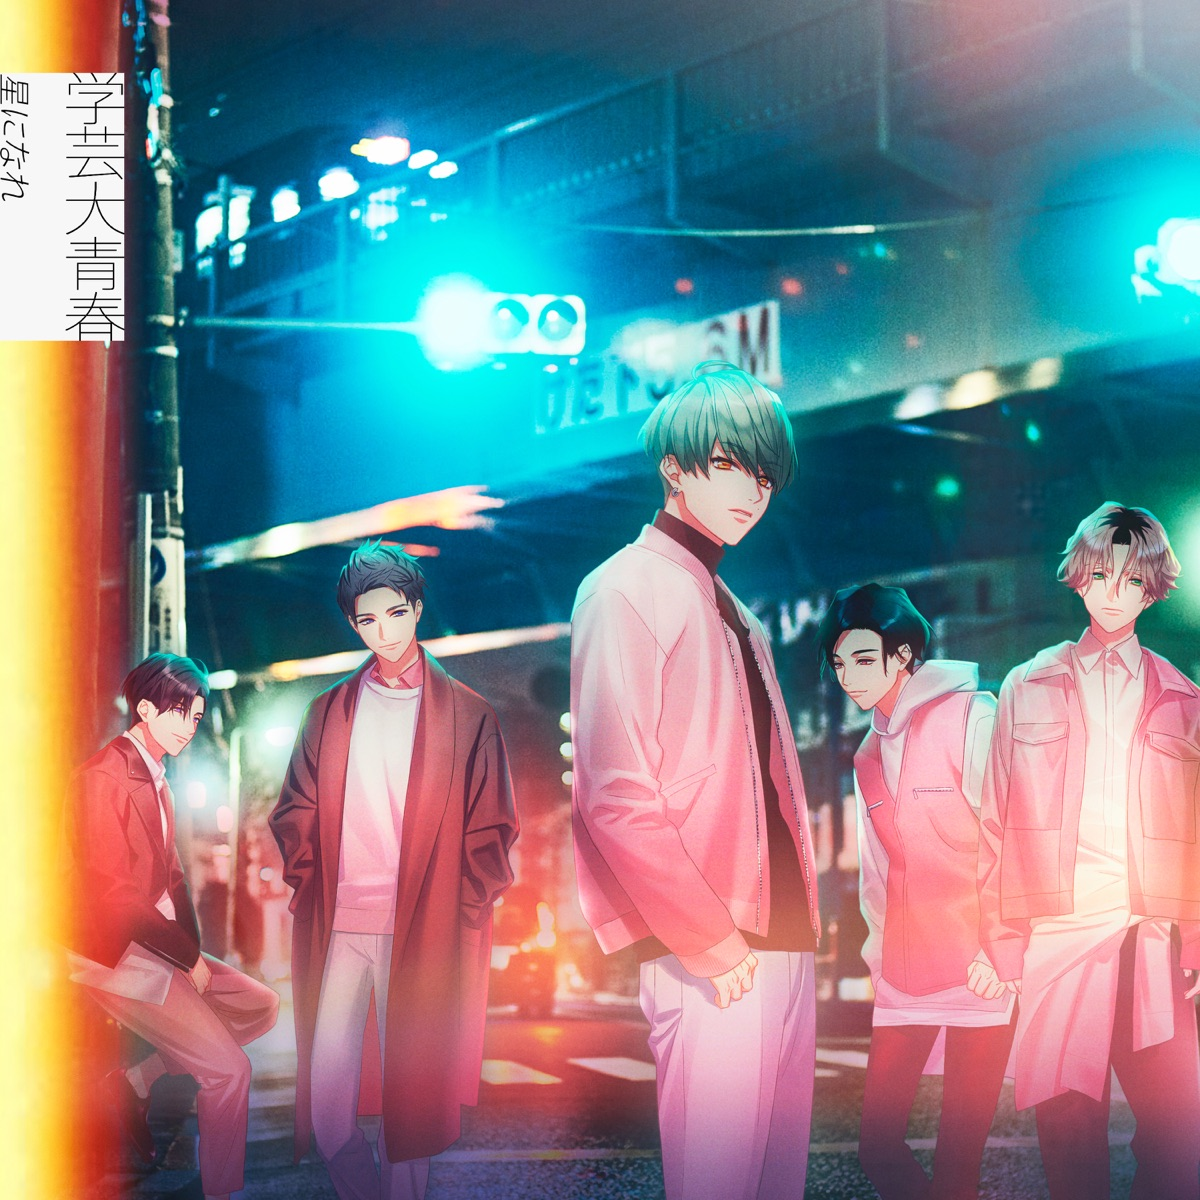 『ATEEZ - Fireworks (I'm The One) 歌詞』収録の『ZERO : FEVER Part.2』ジャケット